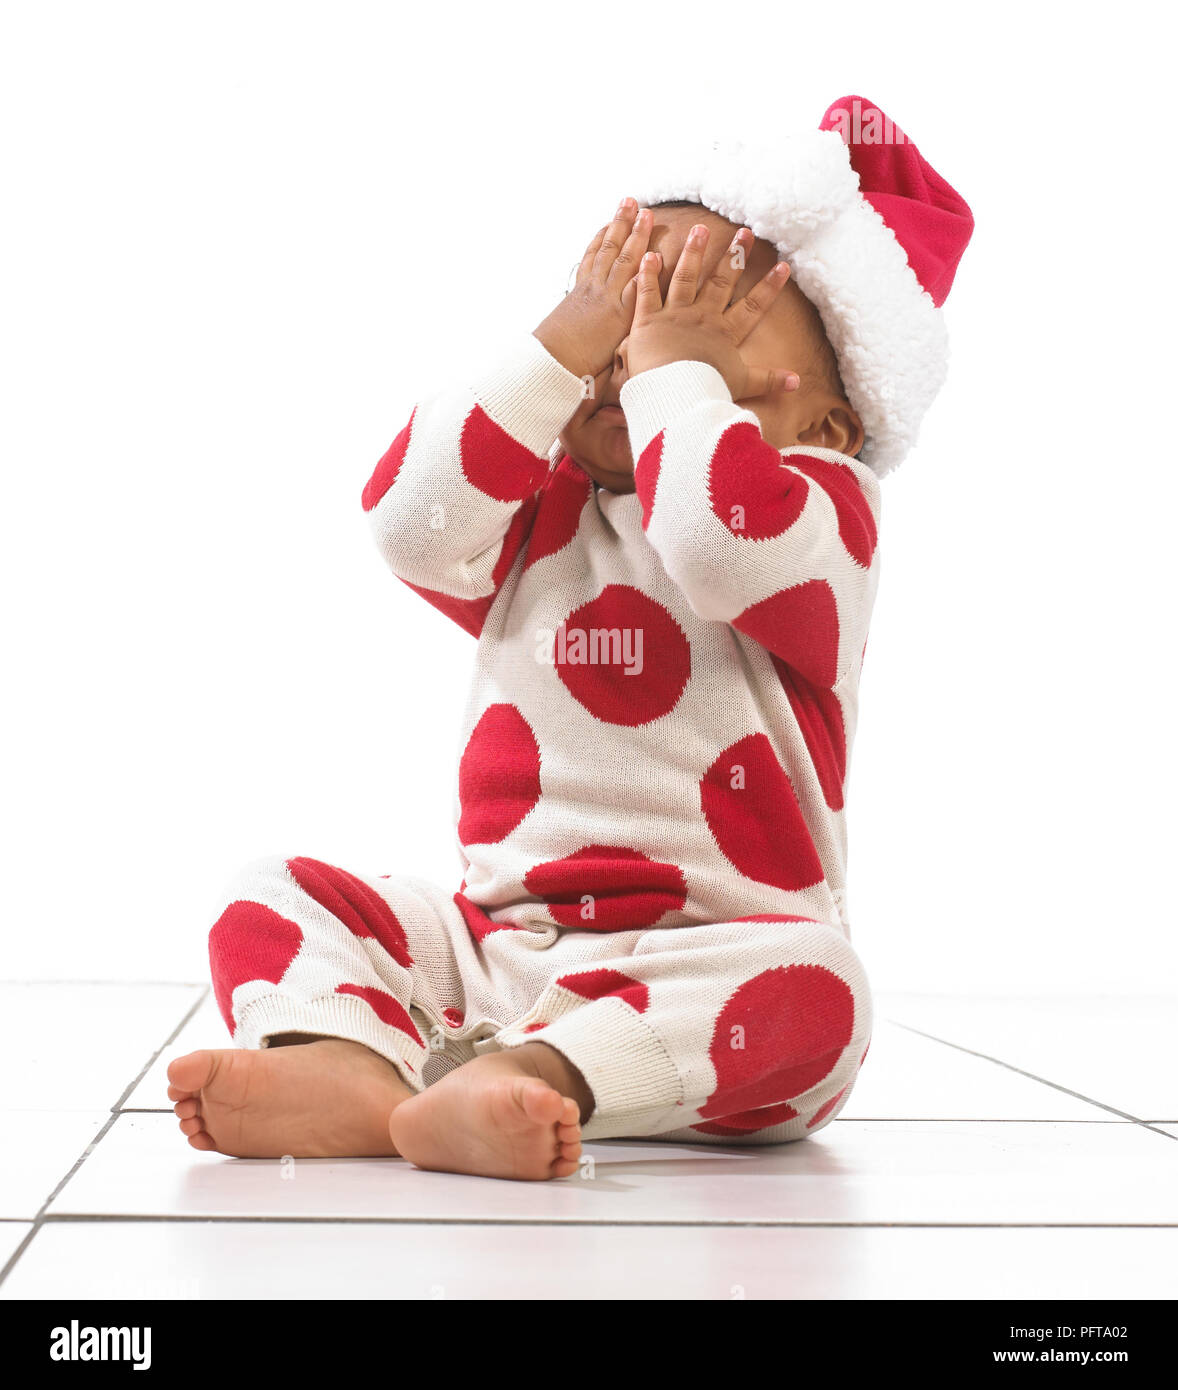 Girl wearing onesie, christmas hat and covering eyes with hands, 18 months Stock Photo